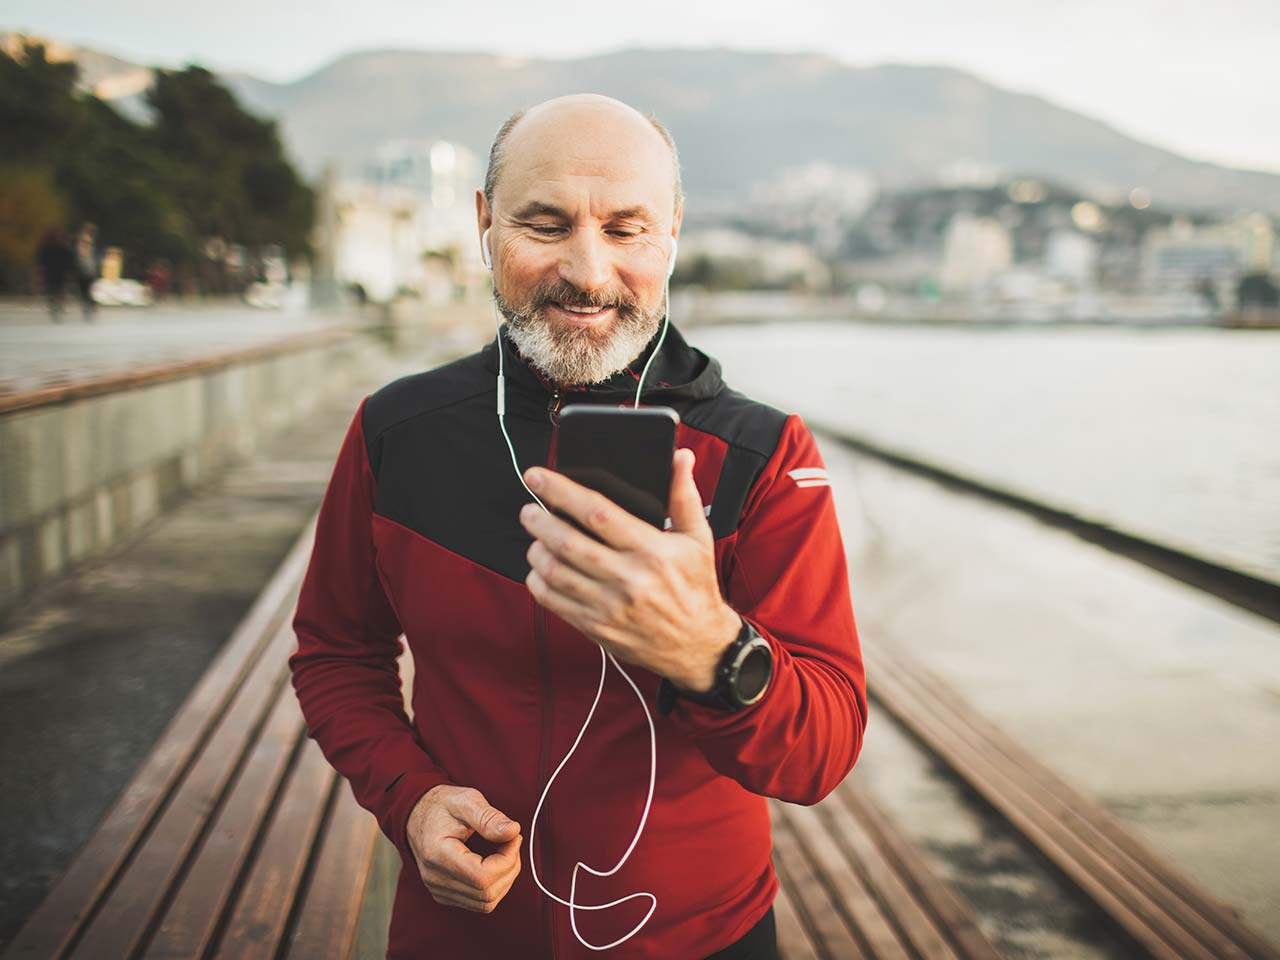 Older man out on a jog with headphones on looking at his mobile phone and smiling